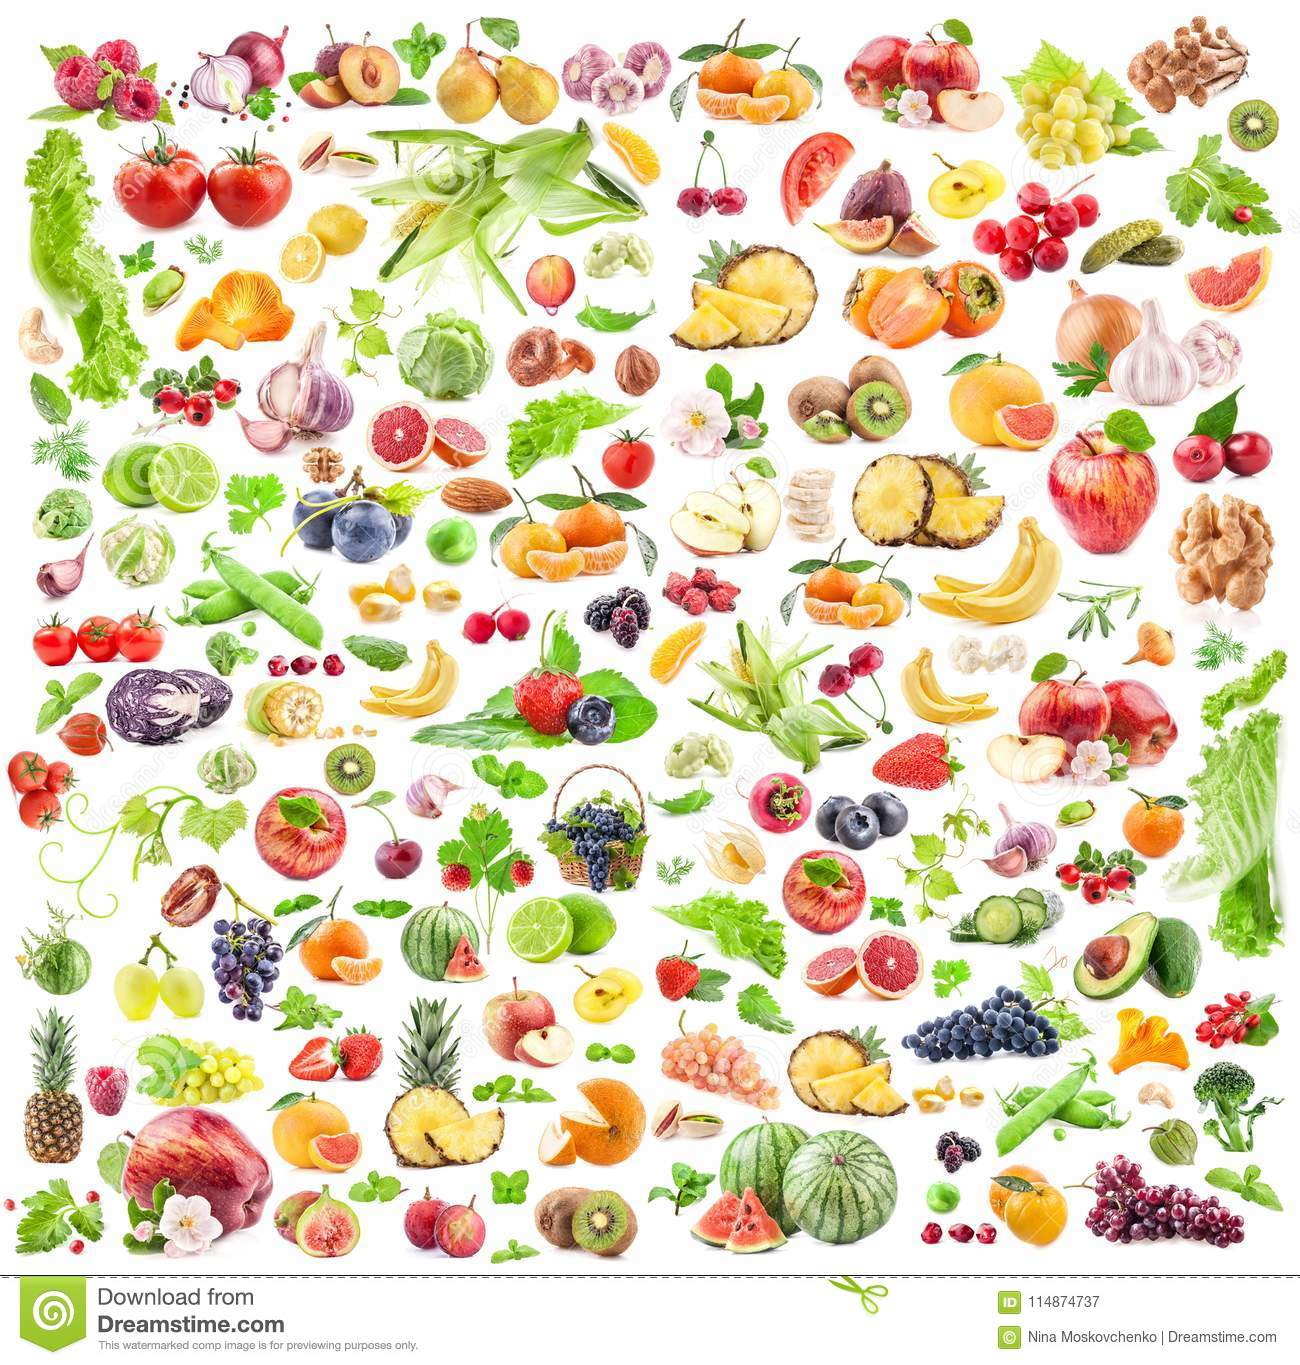 Merveilleux Fruits And Vegetables Background. Big Collection Of Fruits And Vegetables  Isolated On White Background.